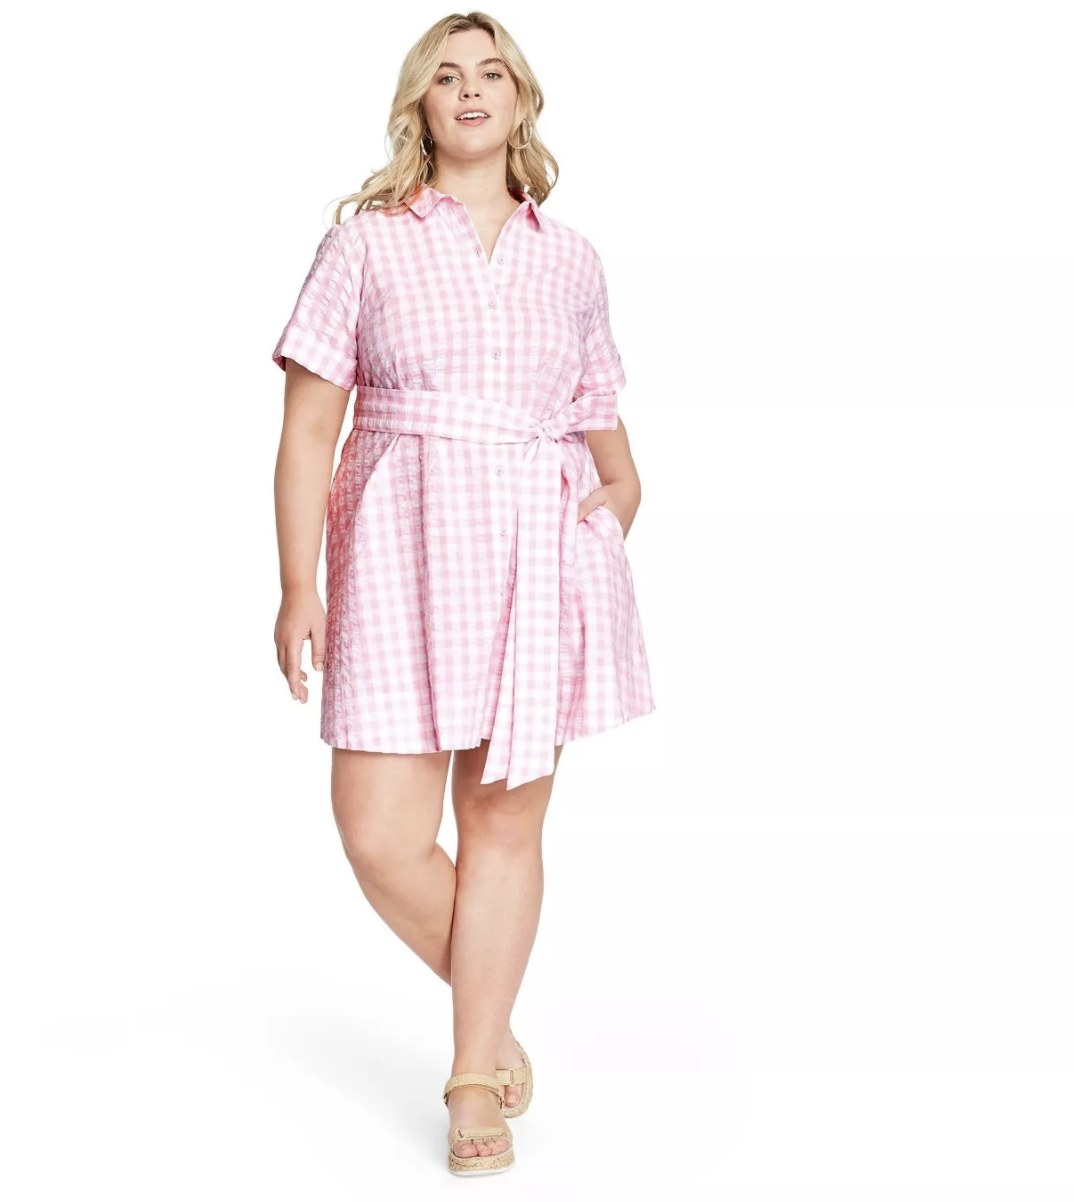 Model wearing the pink and white gingham dress